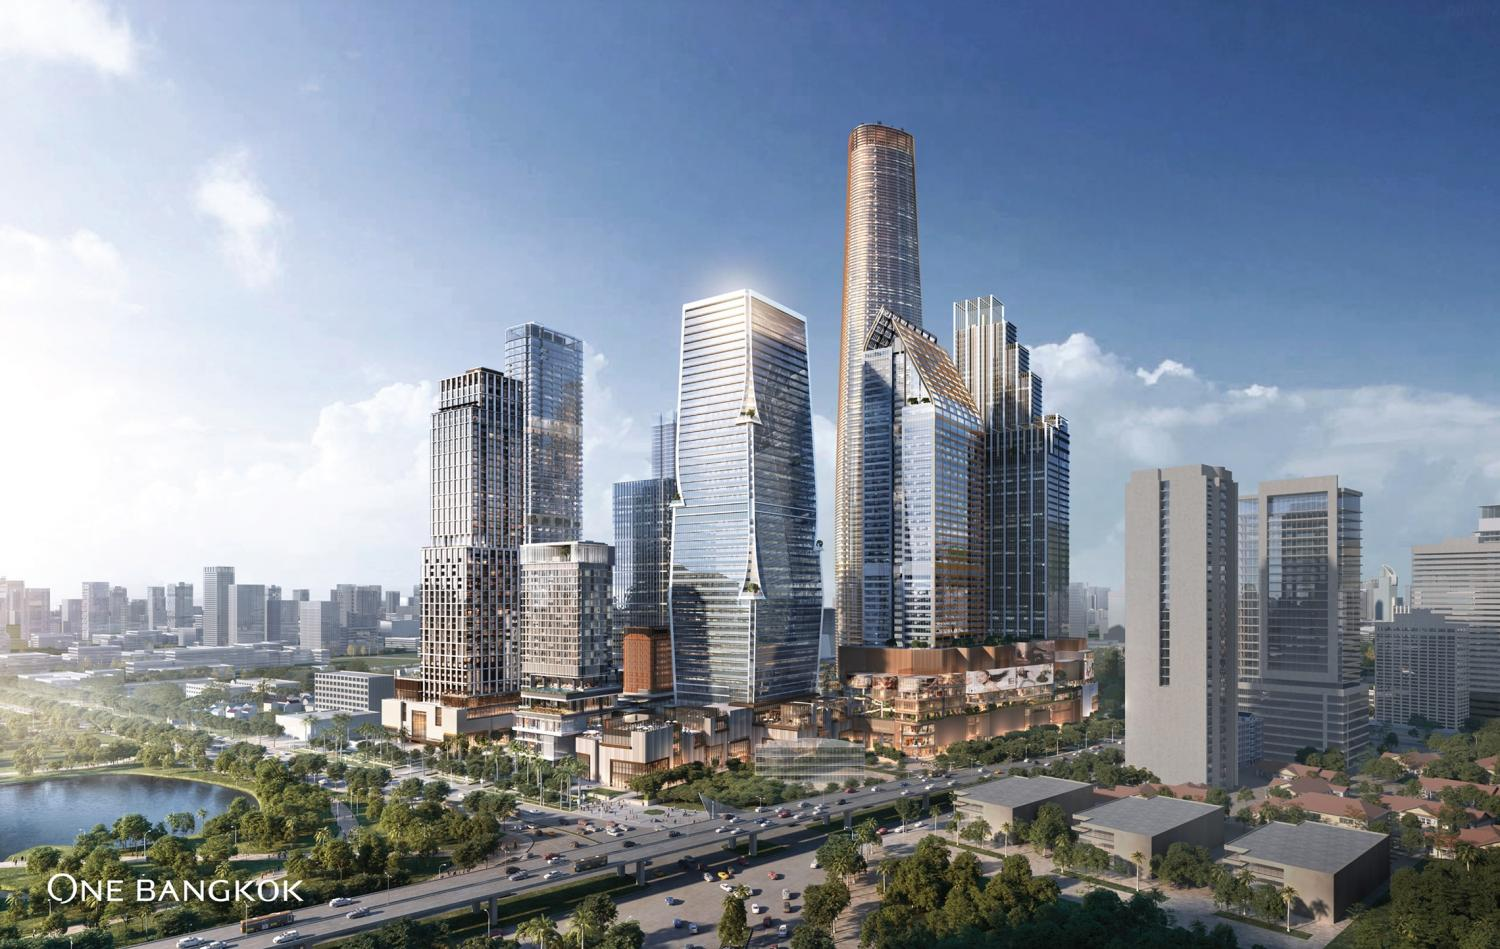 An artist's rendition of One Bangkok, situated at the corner of Wireless and Rama IV roads. The project offers premium Grade A office buildings in the centre of Bangkok's Lumpini district.